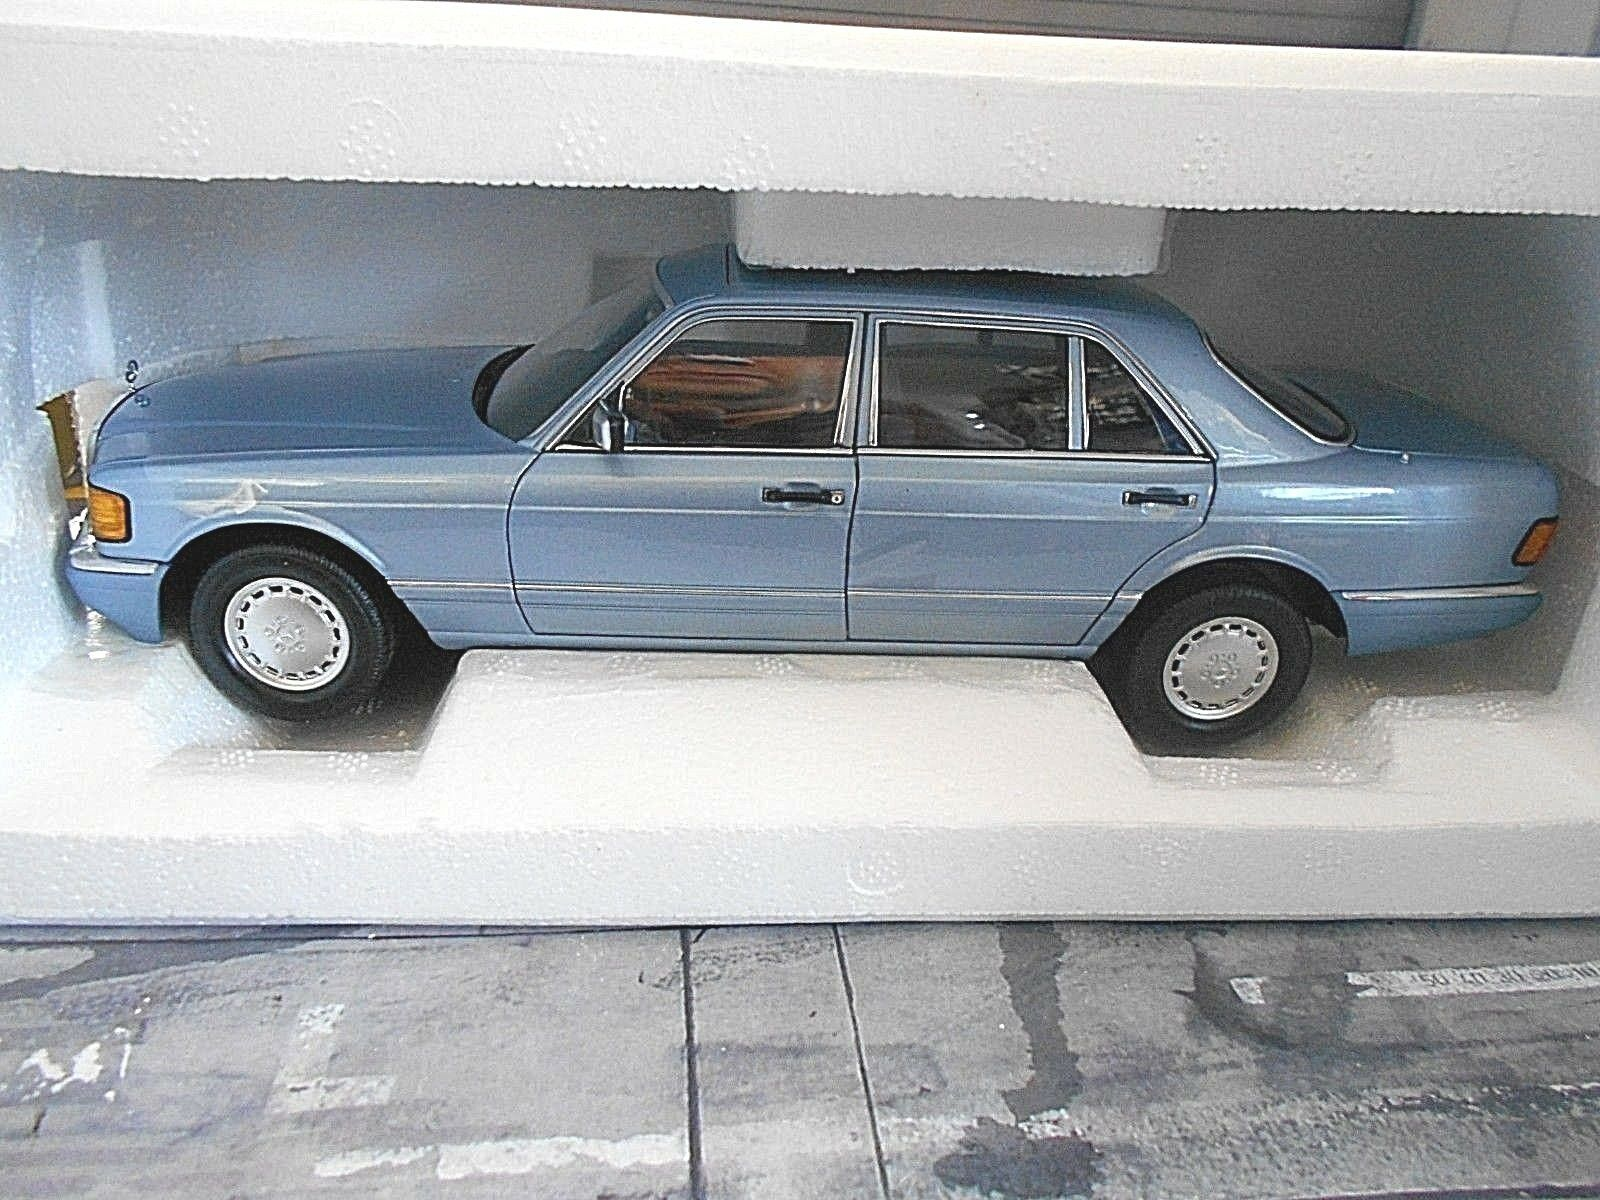 Mercedes benz clase s w126 Hell azul azul 560 sel 1990 norev Limited 1 18 nuevo